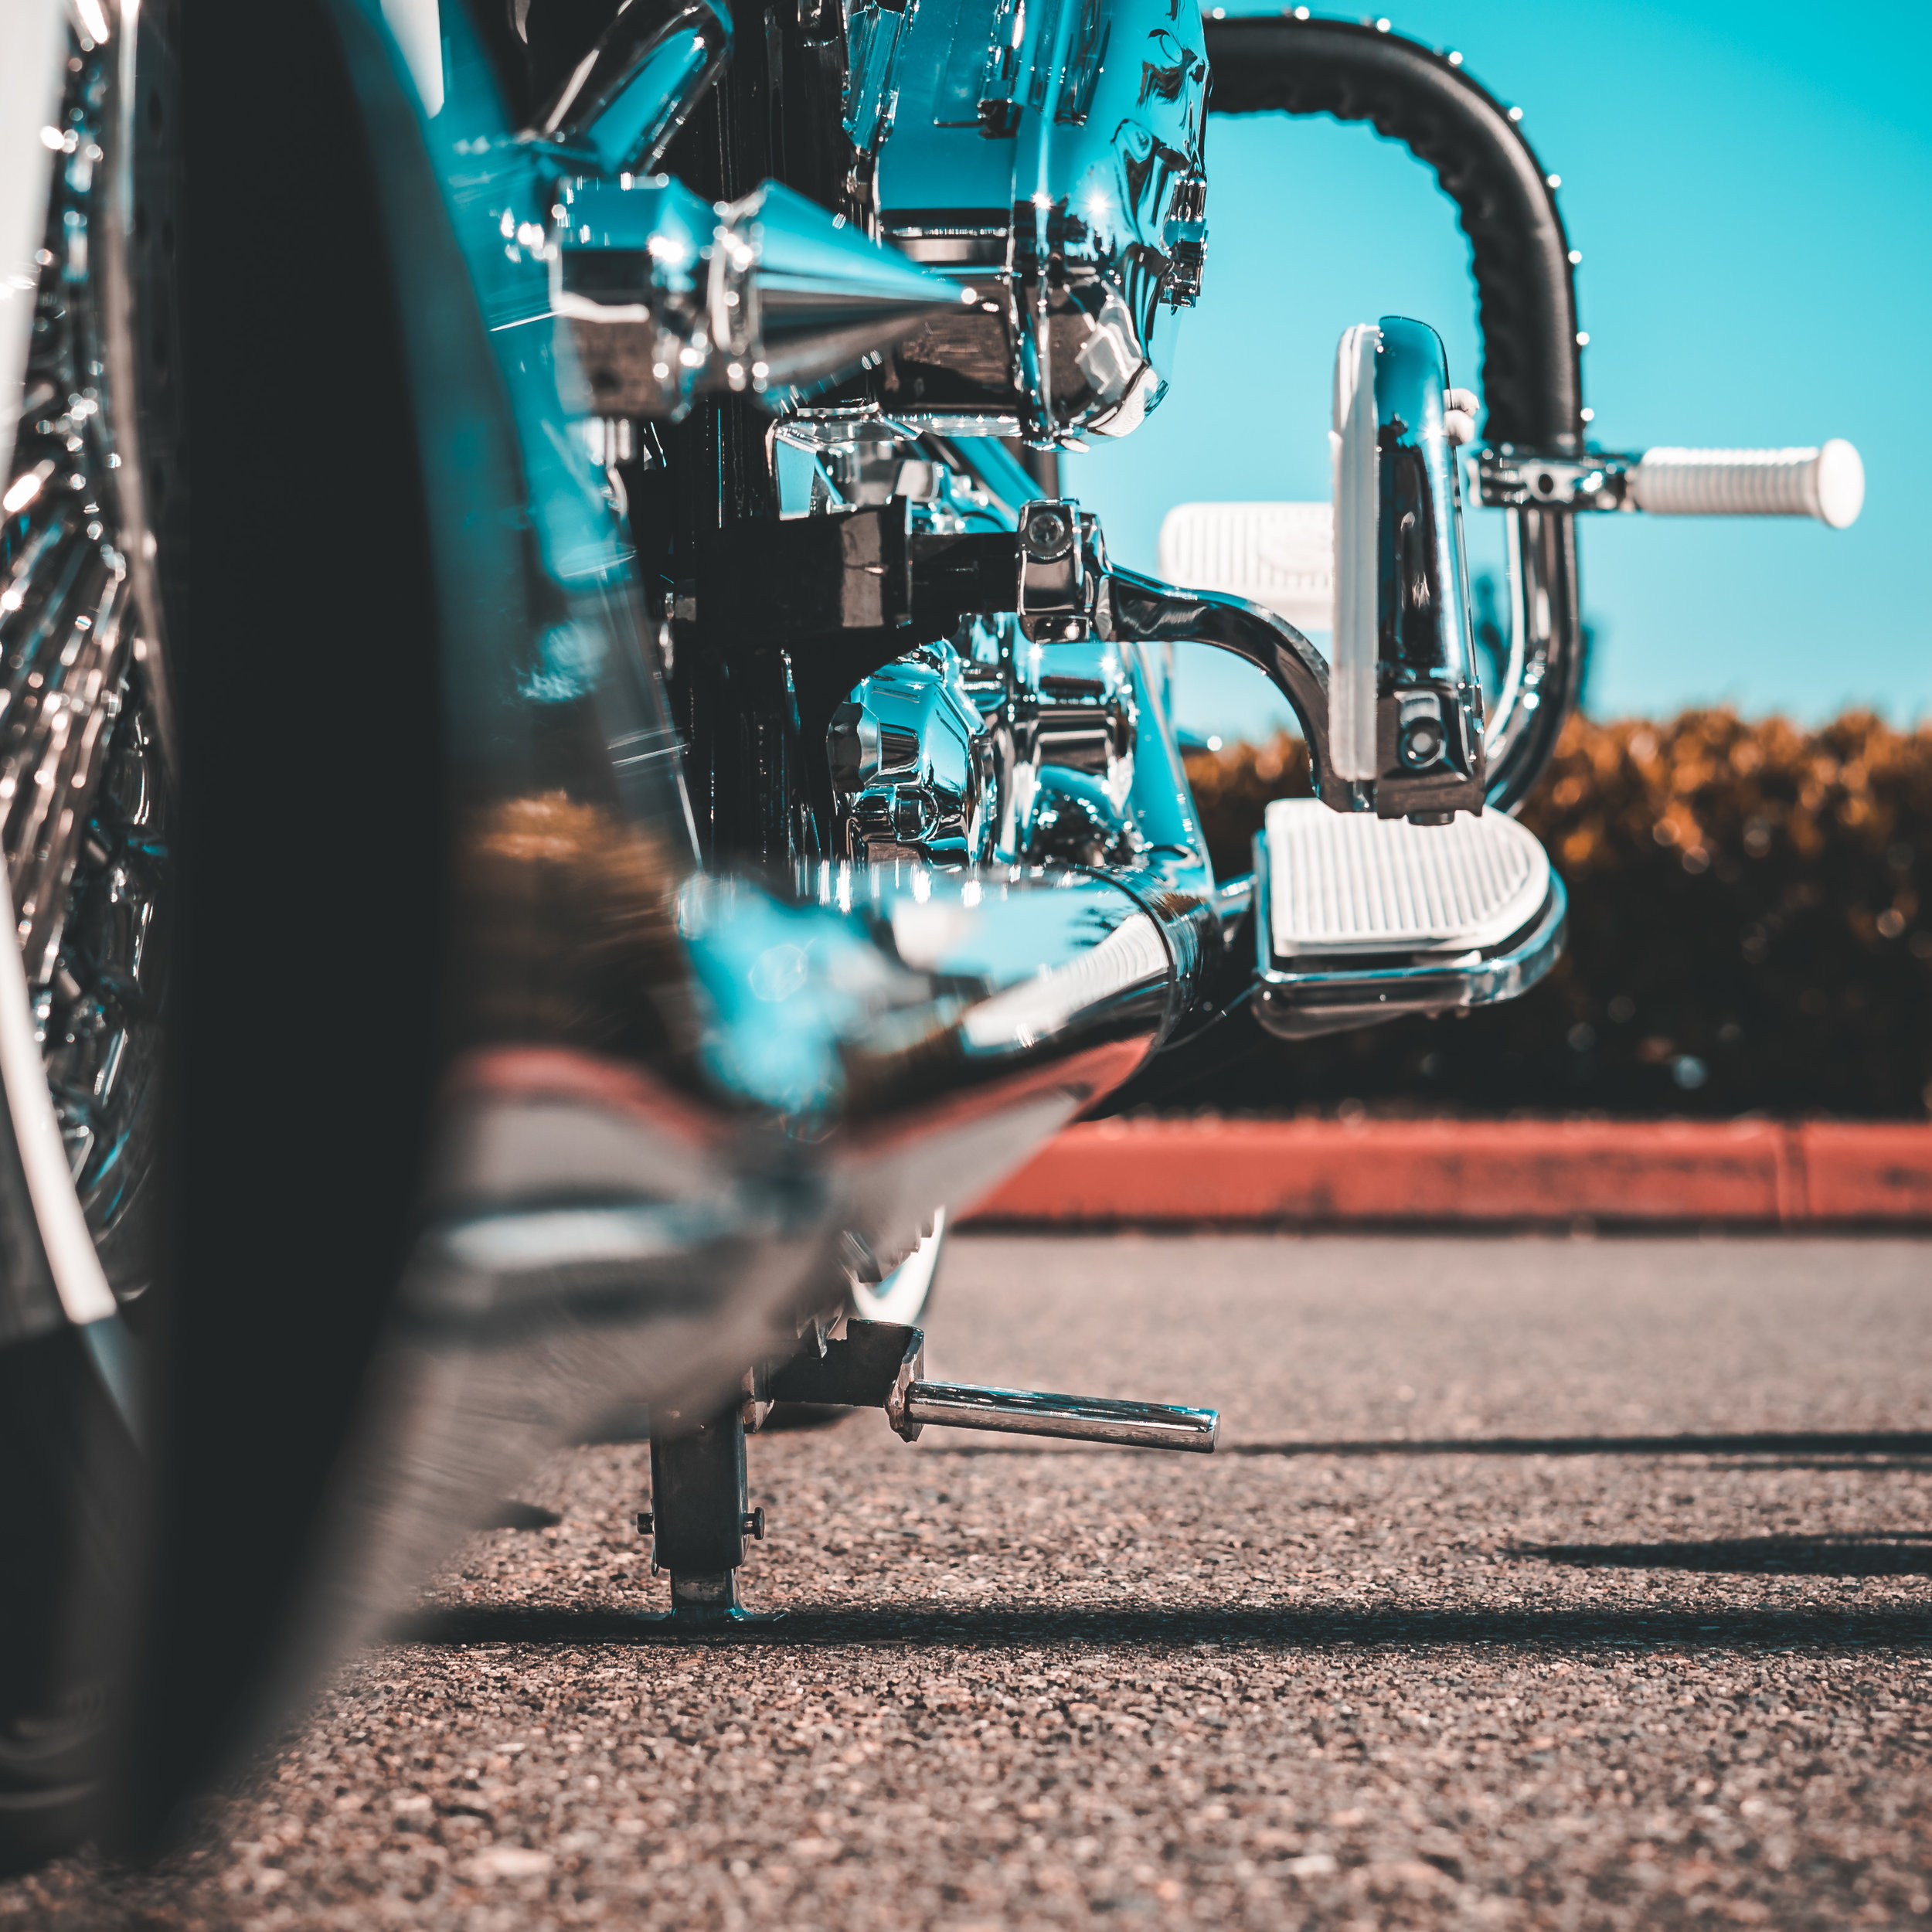 Requirements for the use of this center stand: - • Must be a Harley Davidson softail• Must be 2017 or earlier models ( does not fit Rocker or Breakout)• Must have rear air ride• Stands for dual and fishtail exhaust available